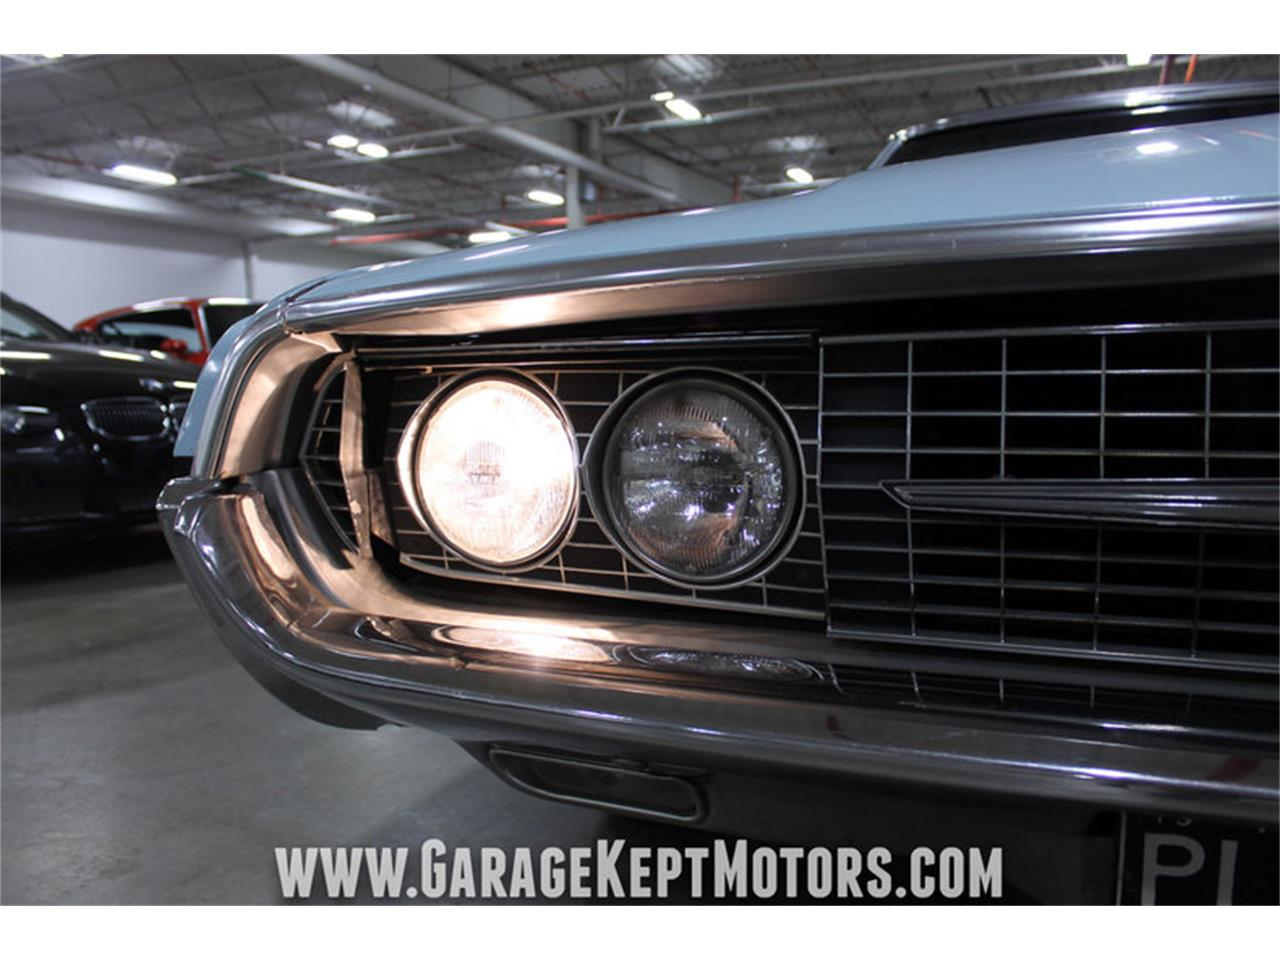 Large Picture of Classic '67 Thunderbird 2-Door Landau located in Michigan Offered by Garage Kept Motors - LU7P